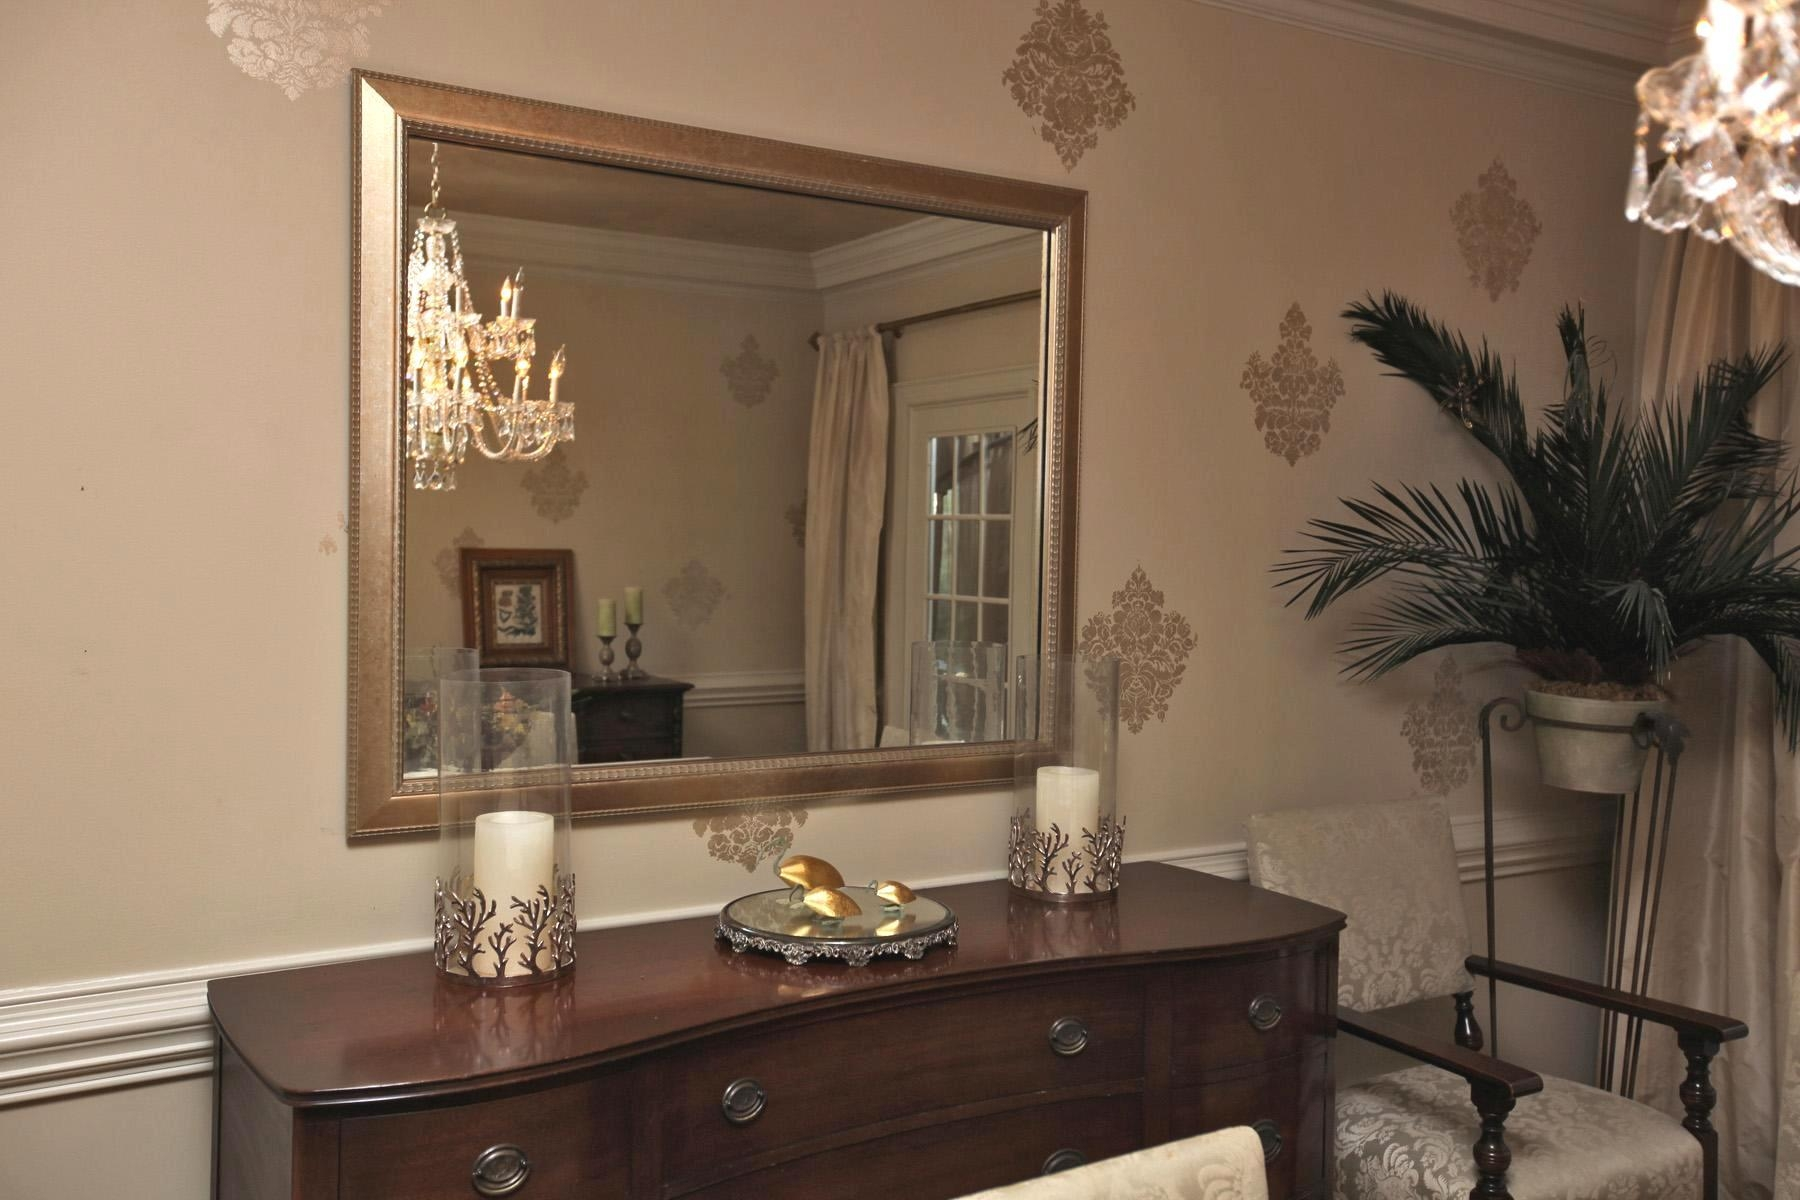 Dining Room : Mirrormate Frames Dining Room Mirrors Full Length Pertaining To Dining Mirrors (View 16 of 20)